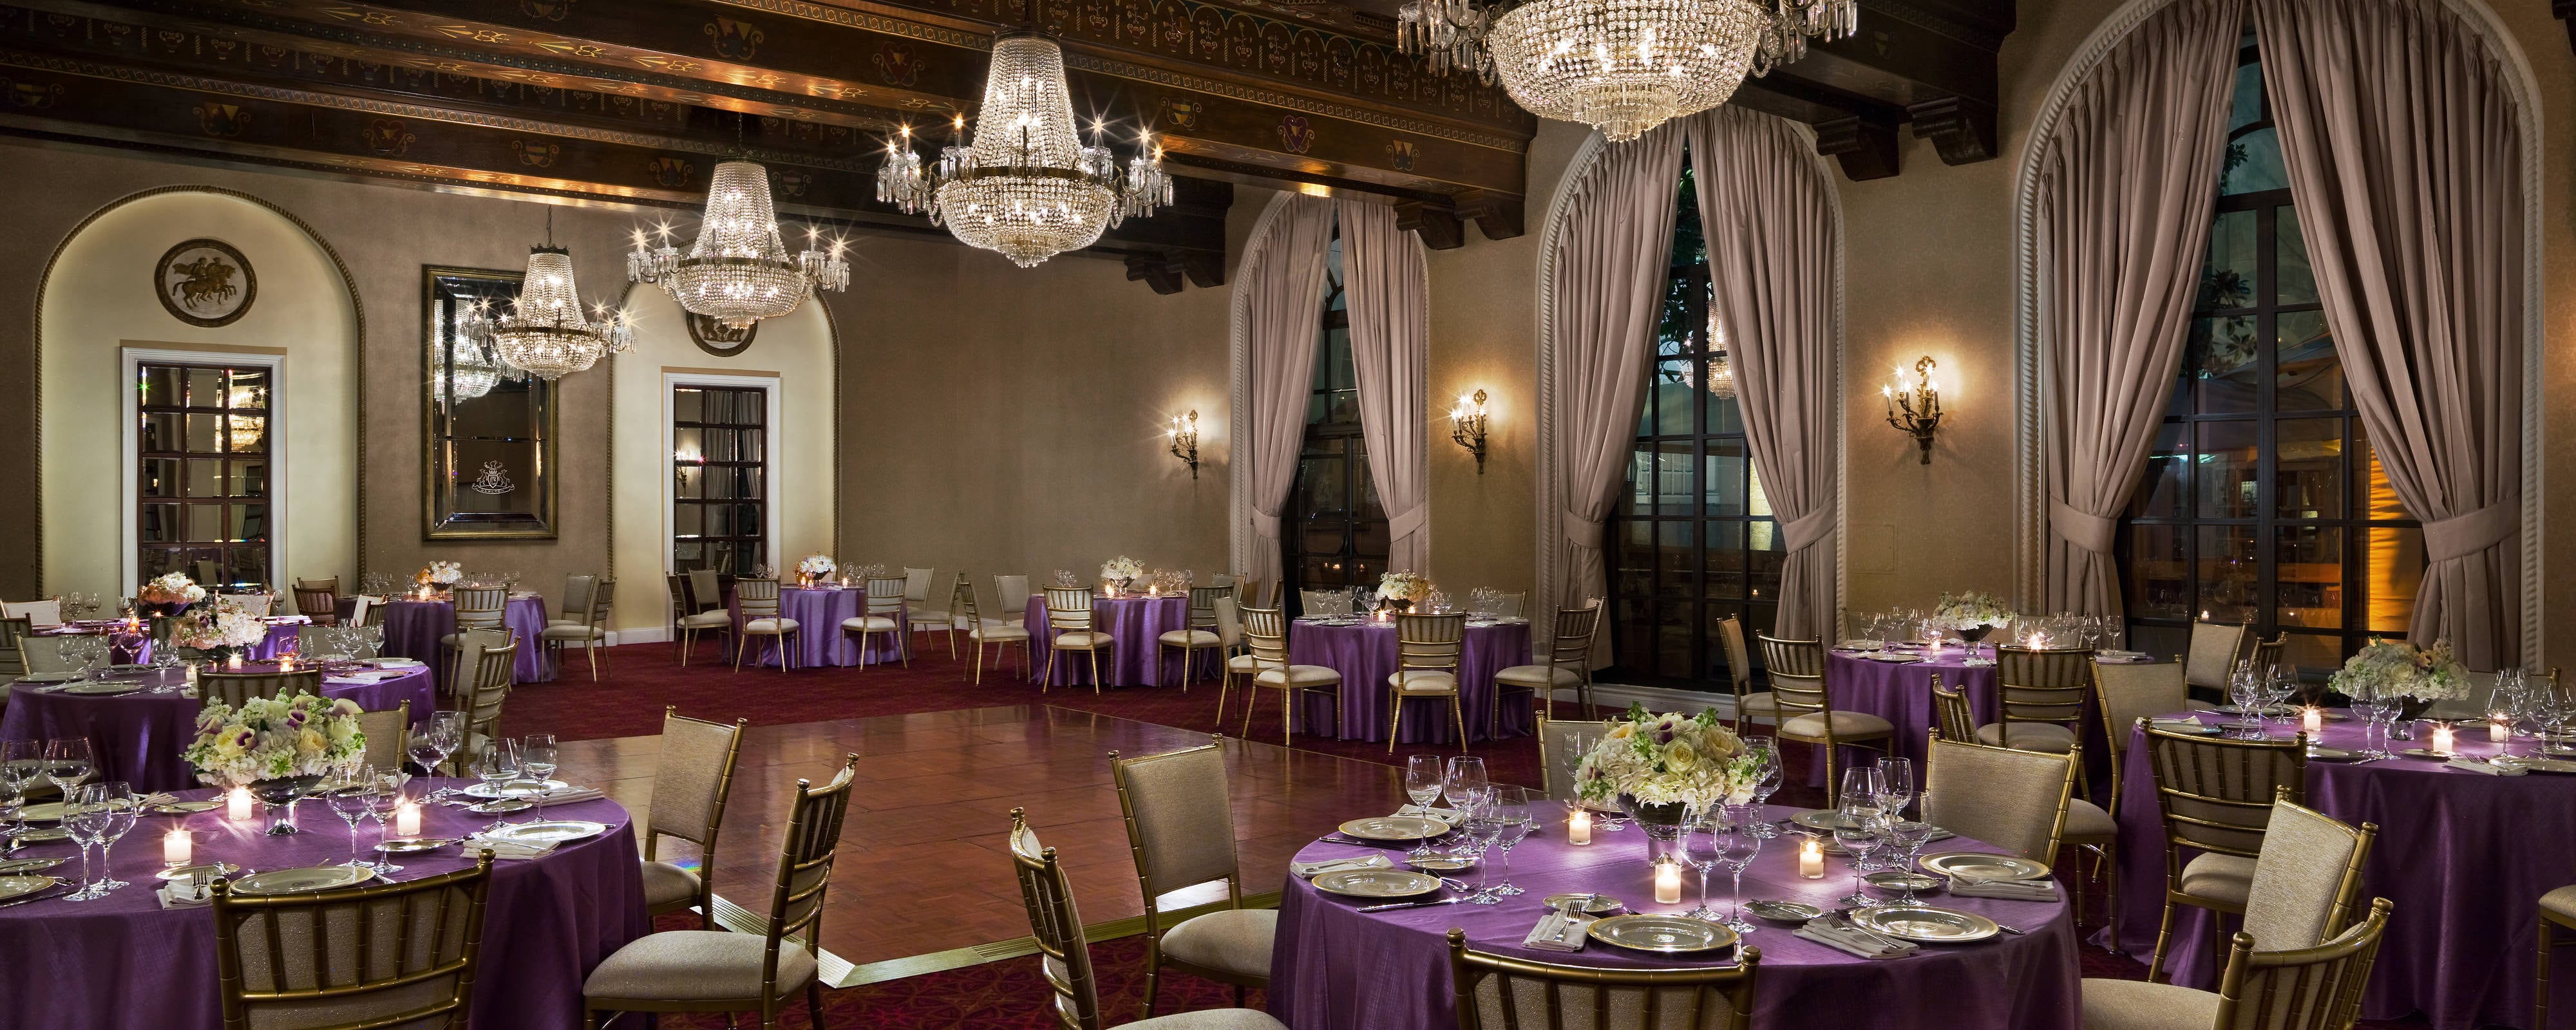 Wedding Reception Venues D C The St Regis Washington D C